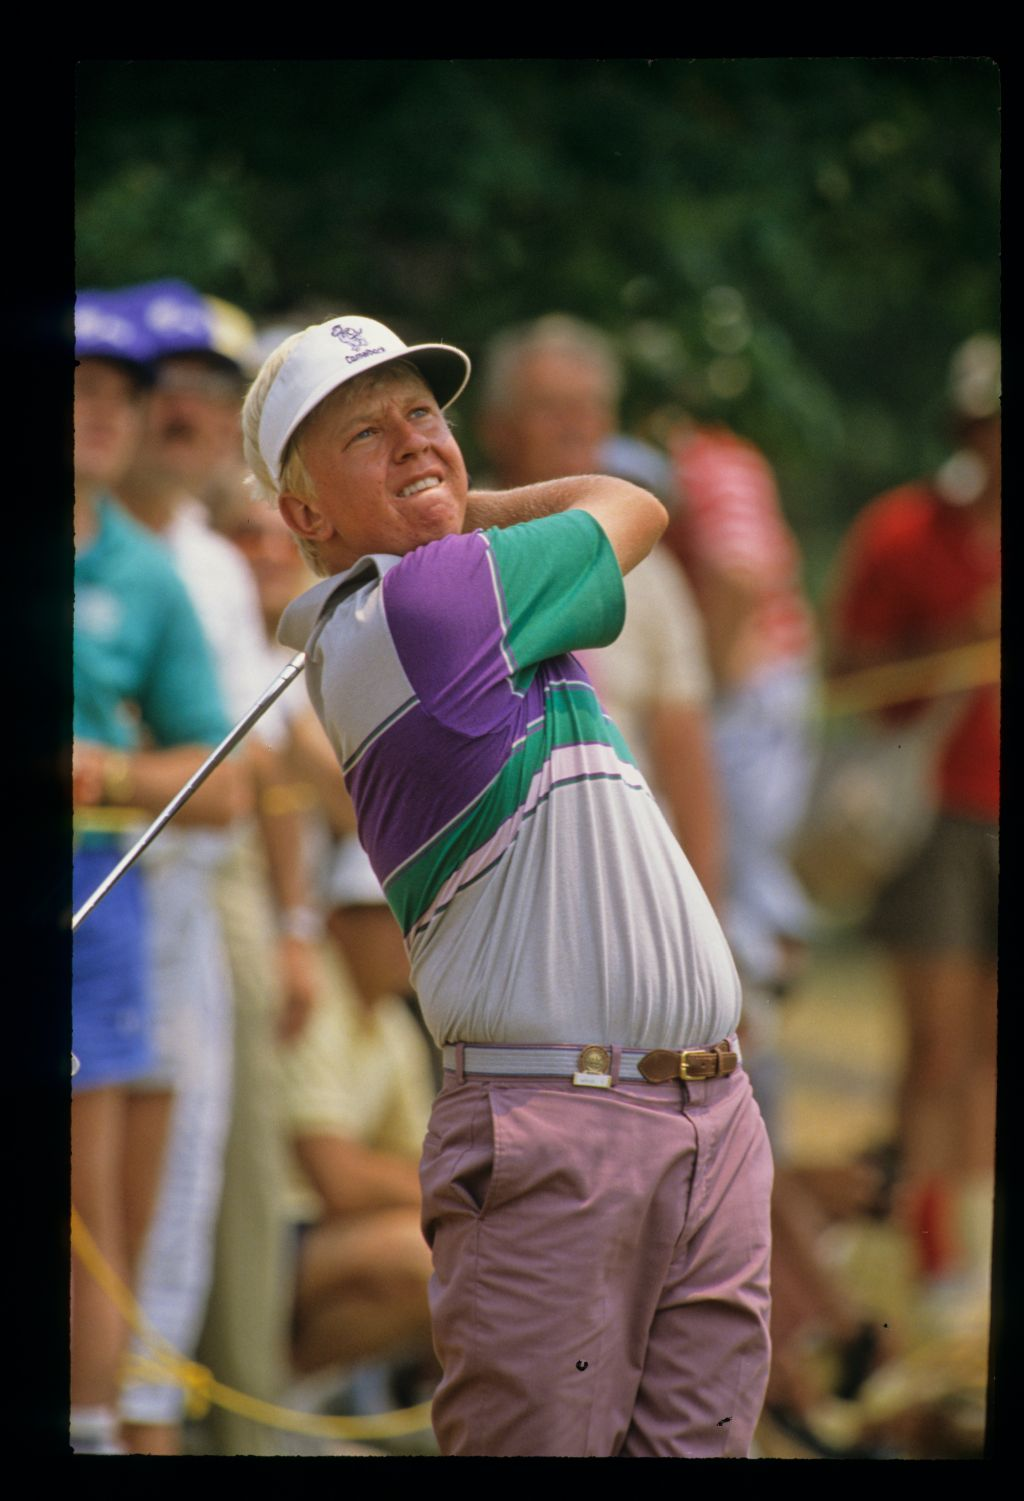 American golfer Billy Mayfair bites his lip with anxiety at the 1988 US Open